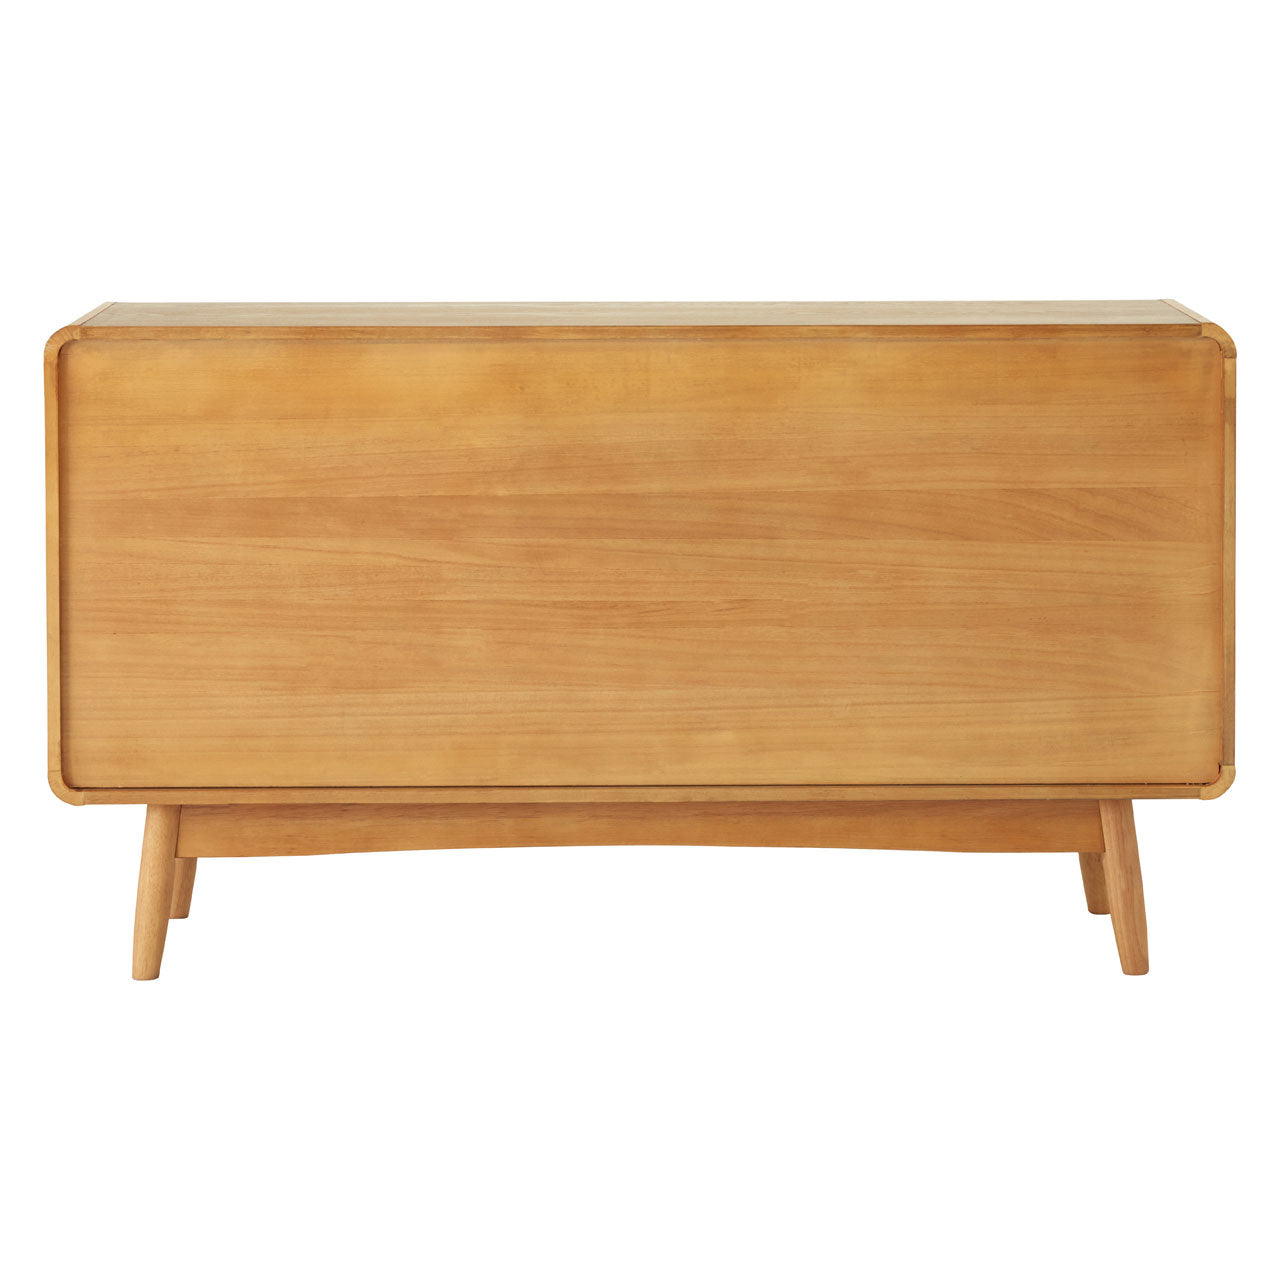 Malmo Sideboard with Drawers